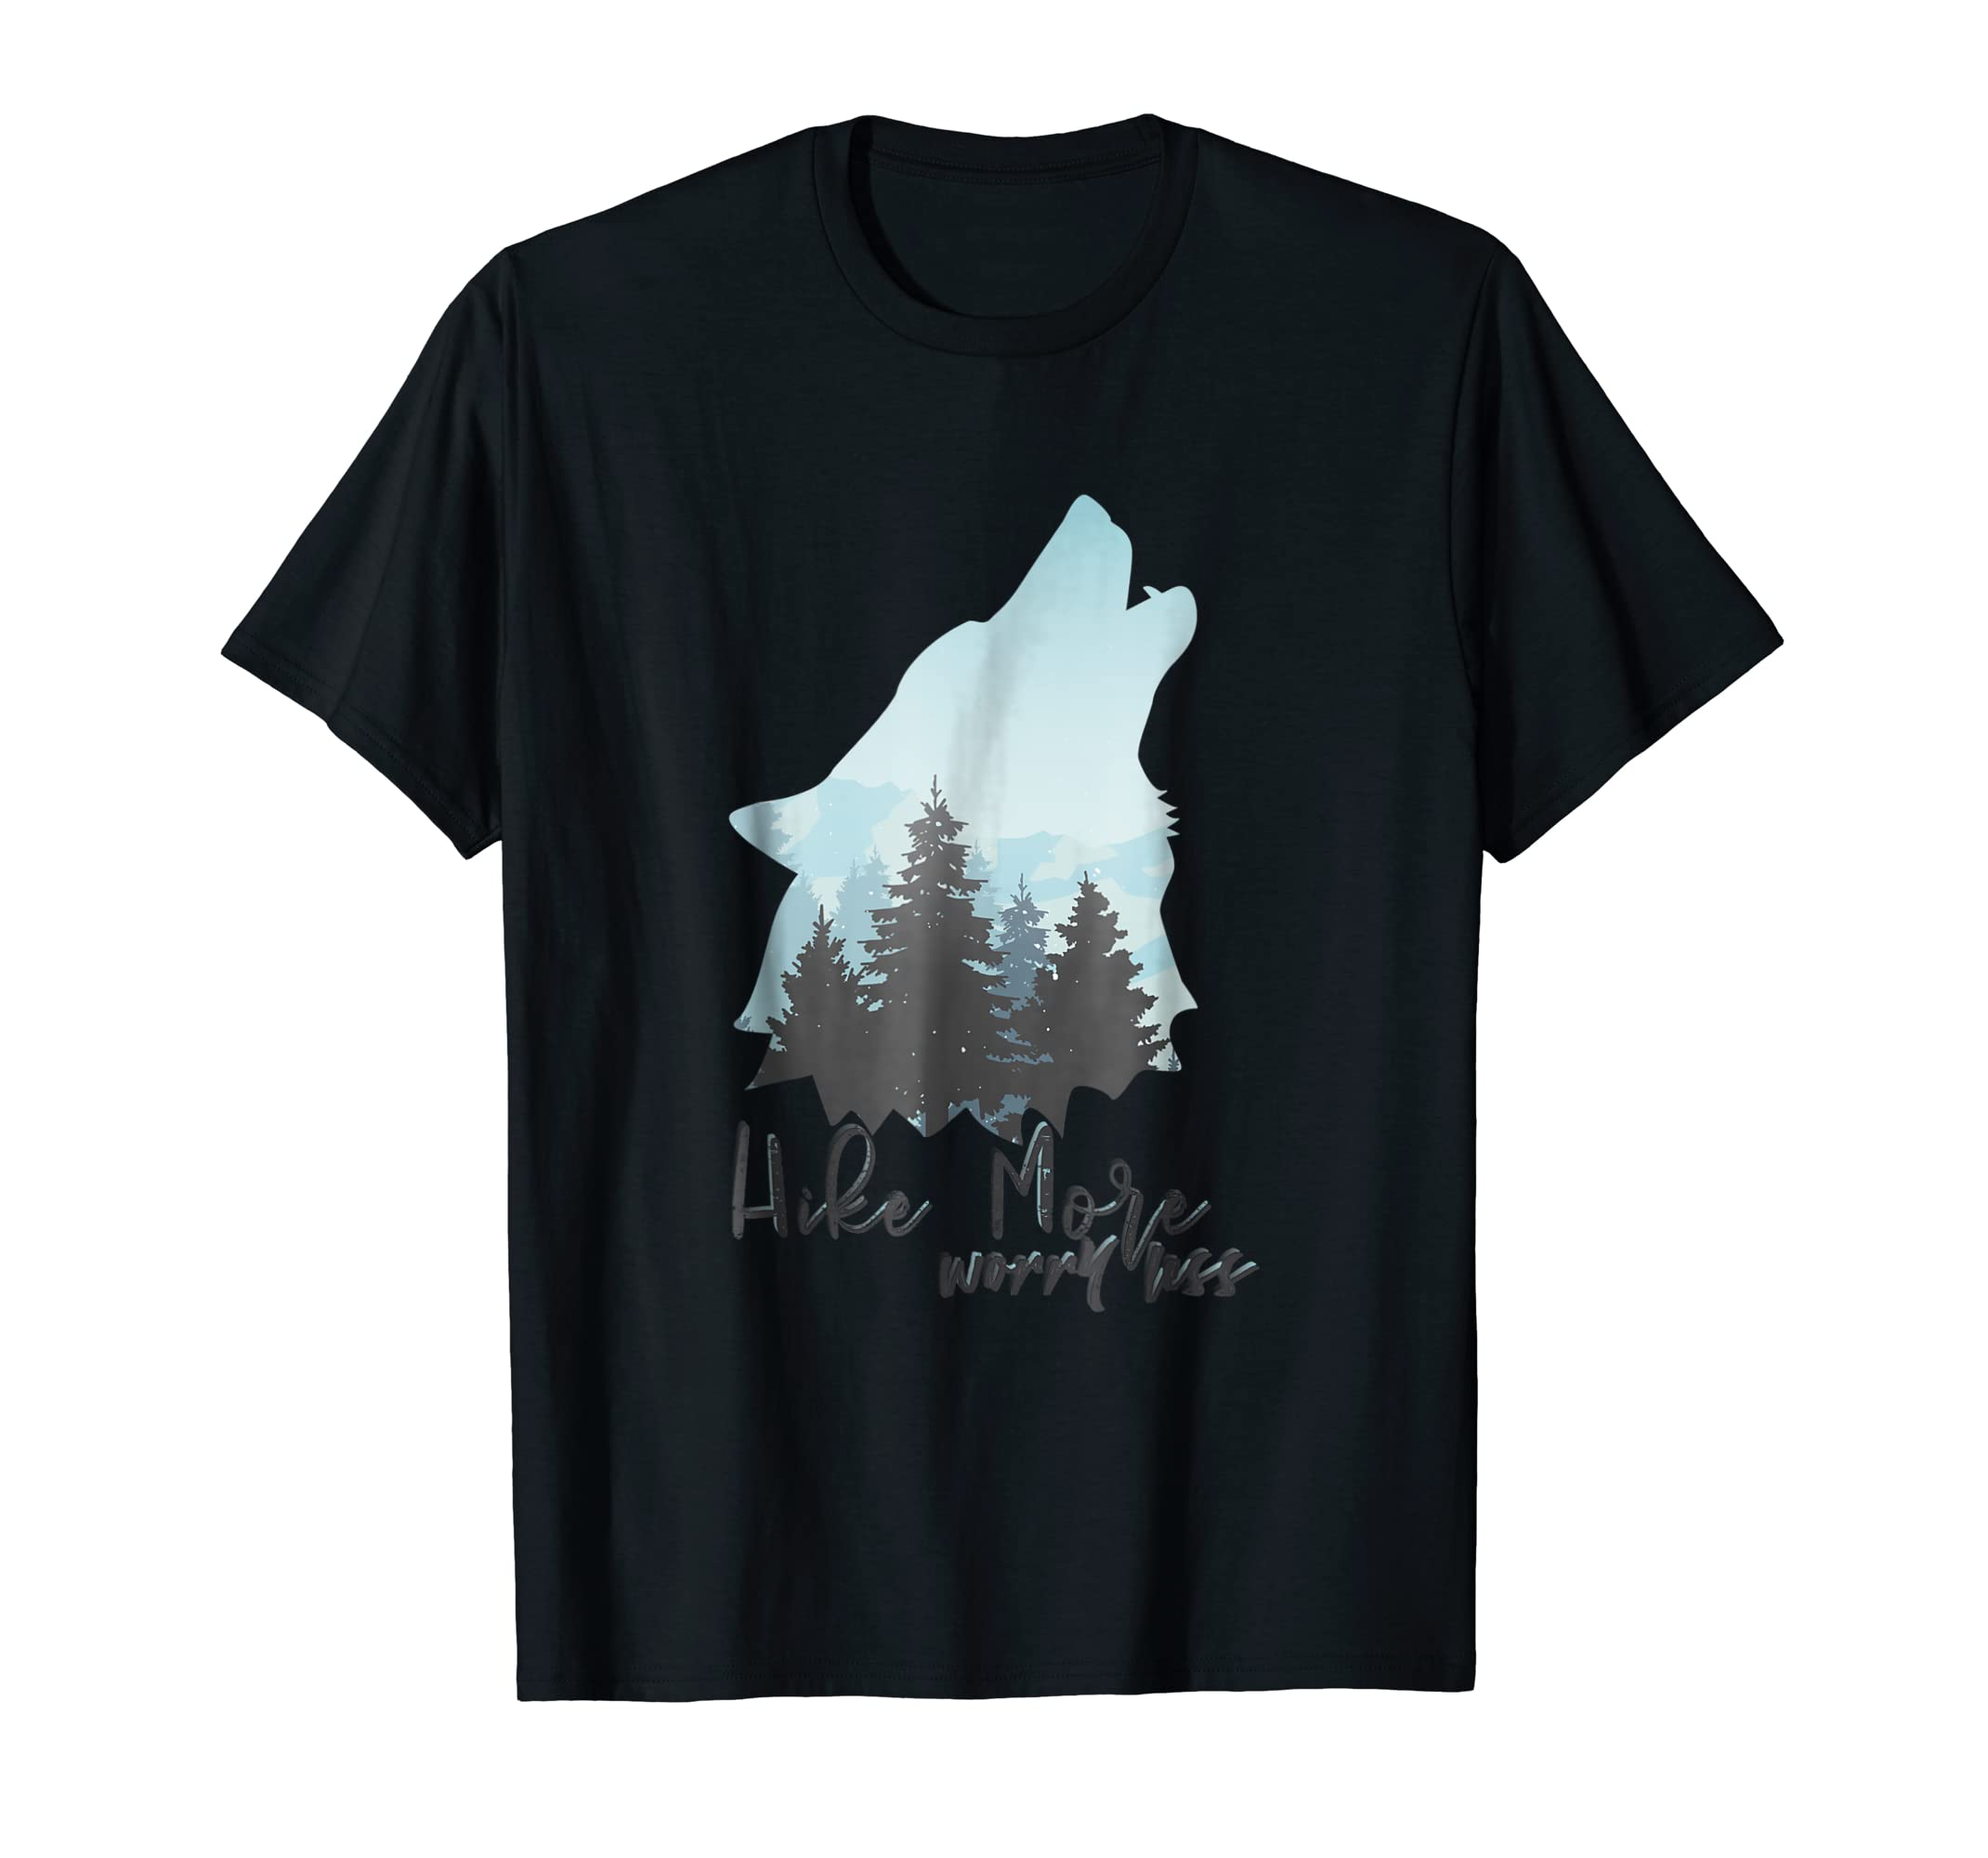 Hike More Worry Less Gifts for Wolf lovers T-Shirt-Men's T-Shirt-Black